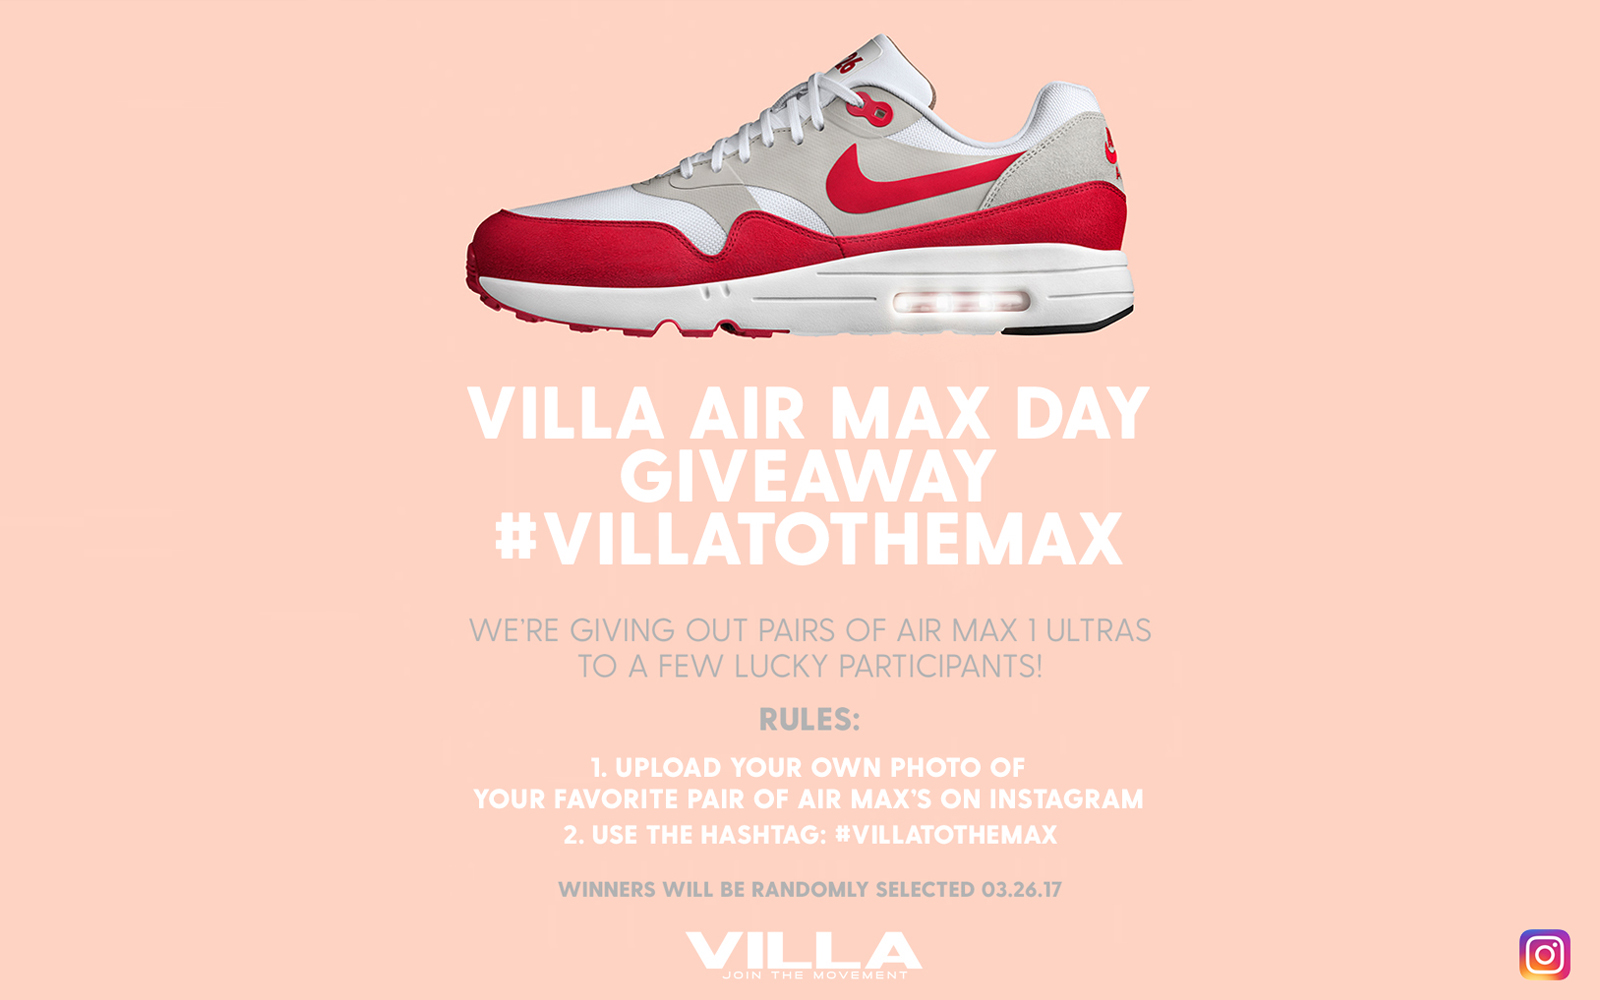 Villa Air Max Day Contest Giveaway The Lifestyle